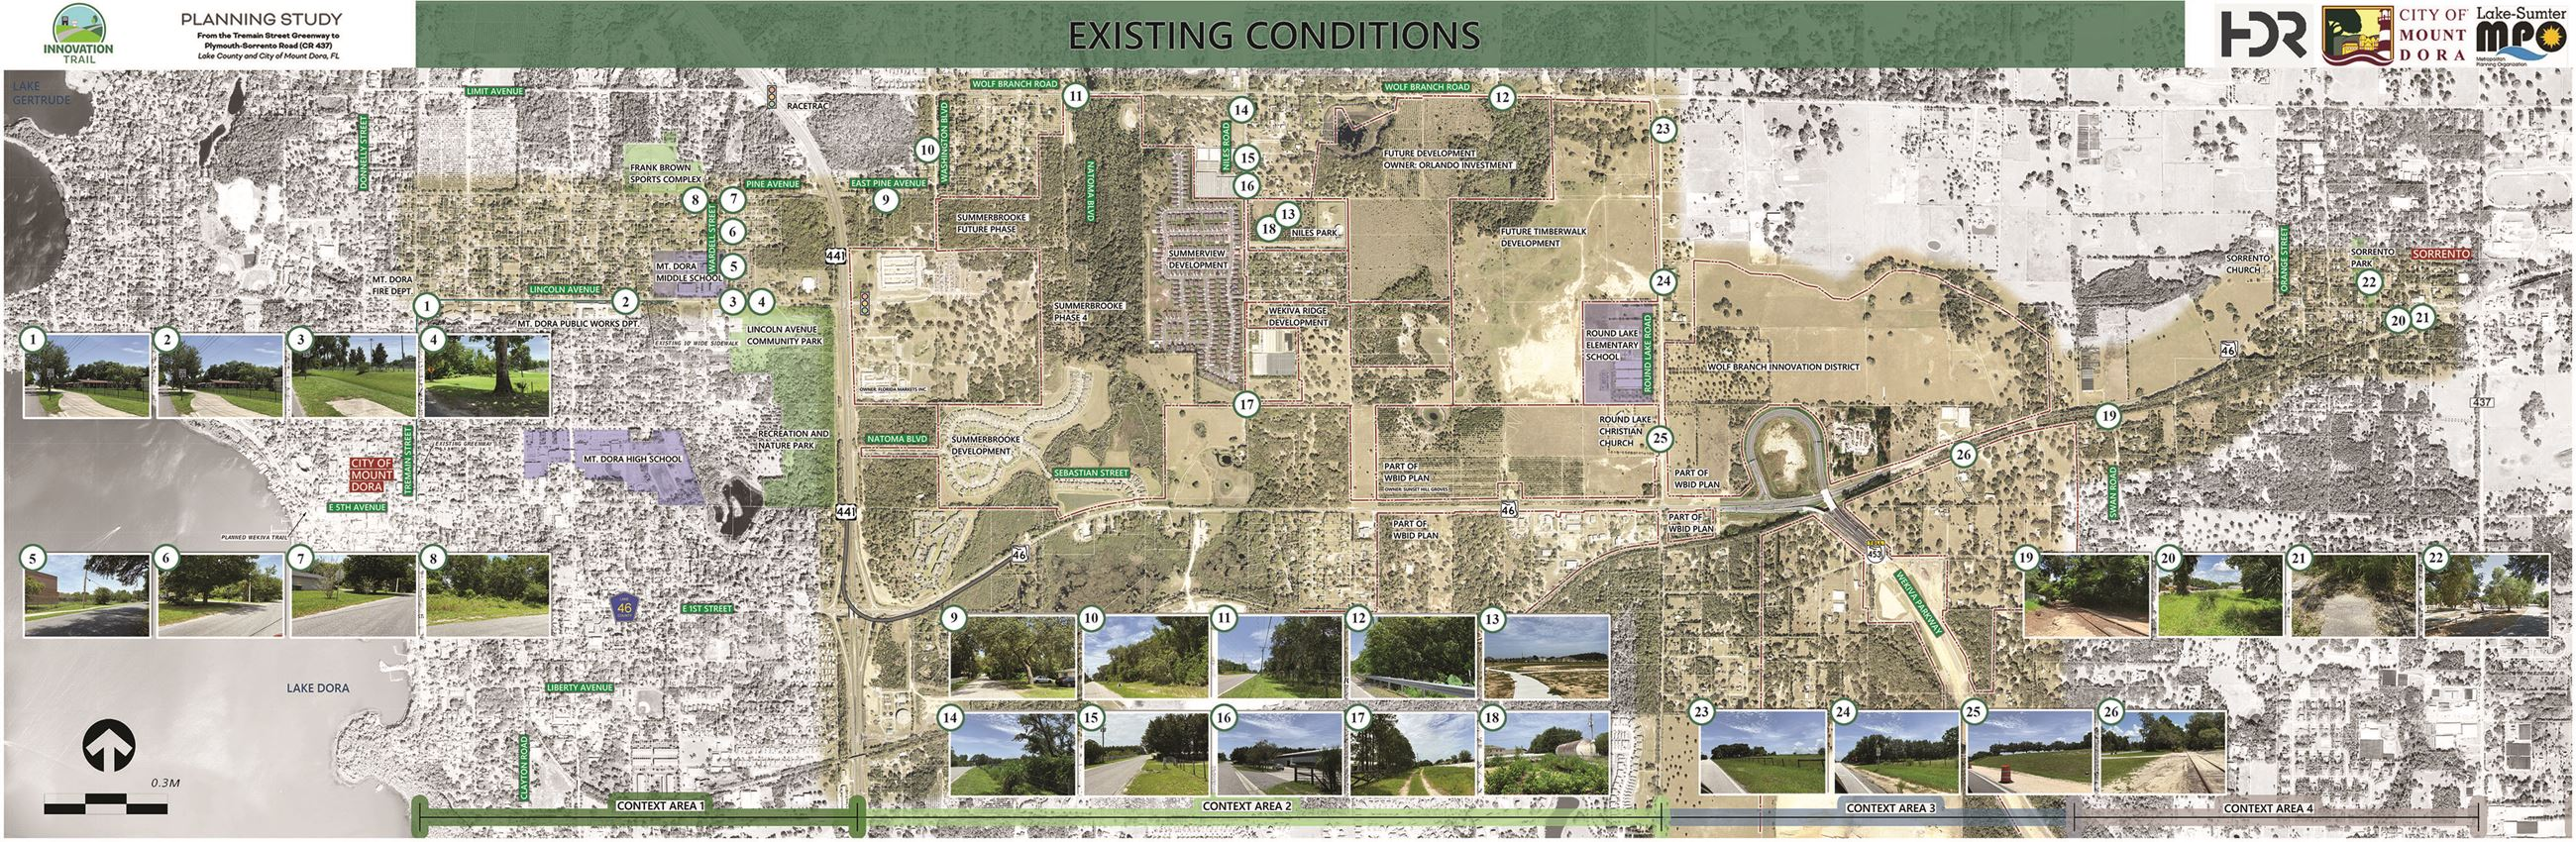 Innovation Trail Existing Conditions Map